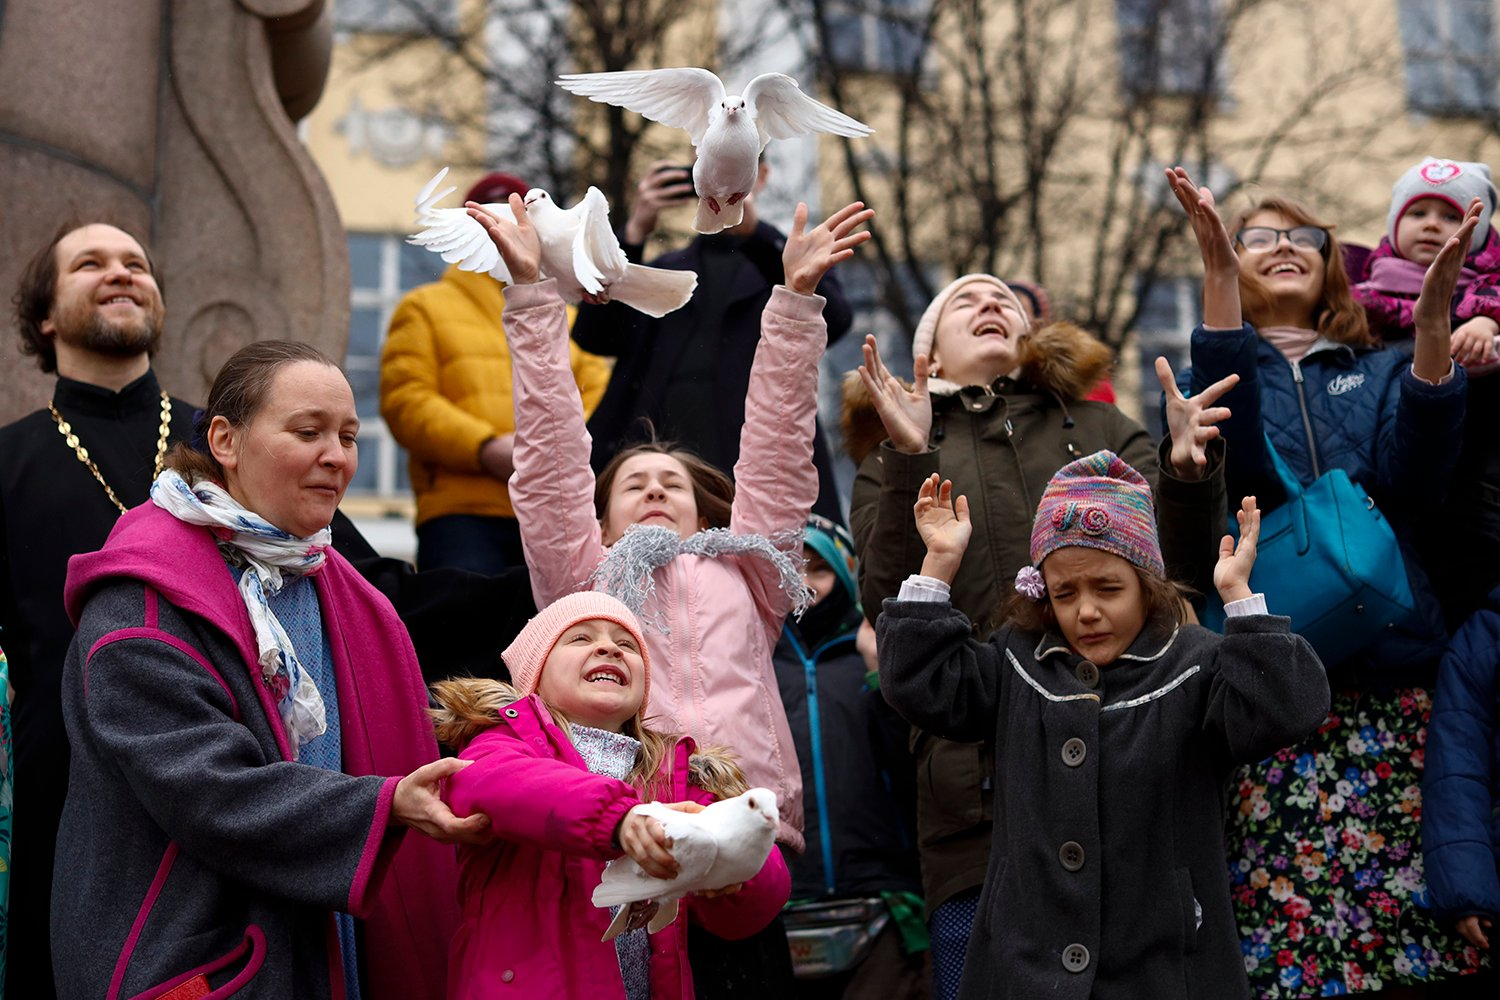 Children and their parents release birds celebrating the Annunciation on the eve of Orthodox Easter in front of the St. Tatiana Church in Moscow, Russia, Wednesday, April 7, 2021. Eastern Orthodox churches, which observe the ancient Julian calendar, usually celebrate Easter later then Western churches. (AP Photo/Alexander Zemlianichenko)